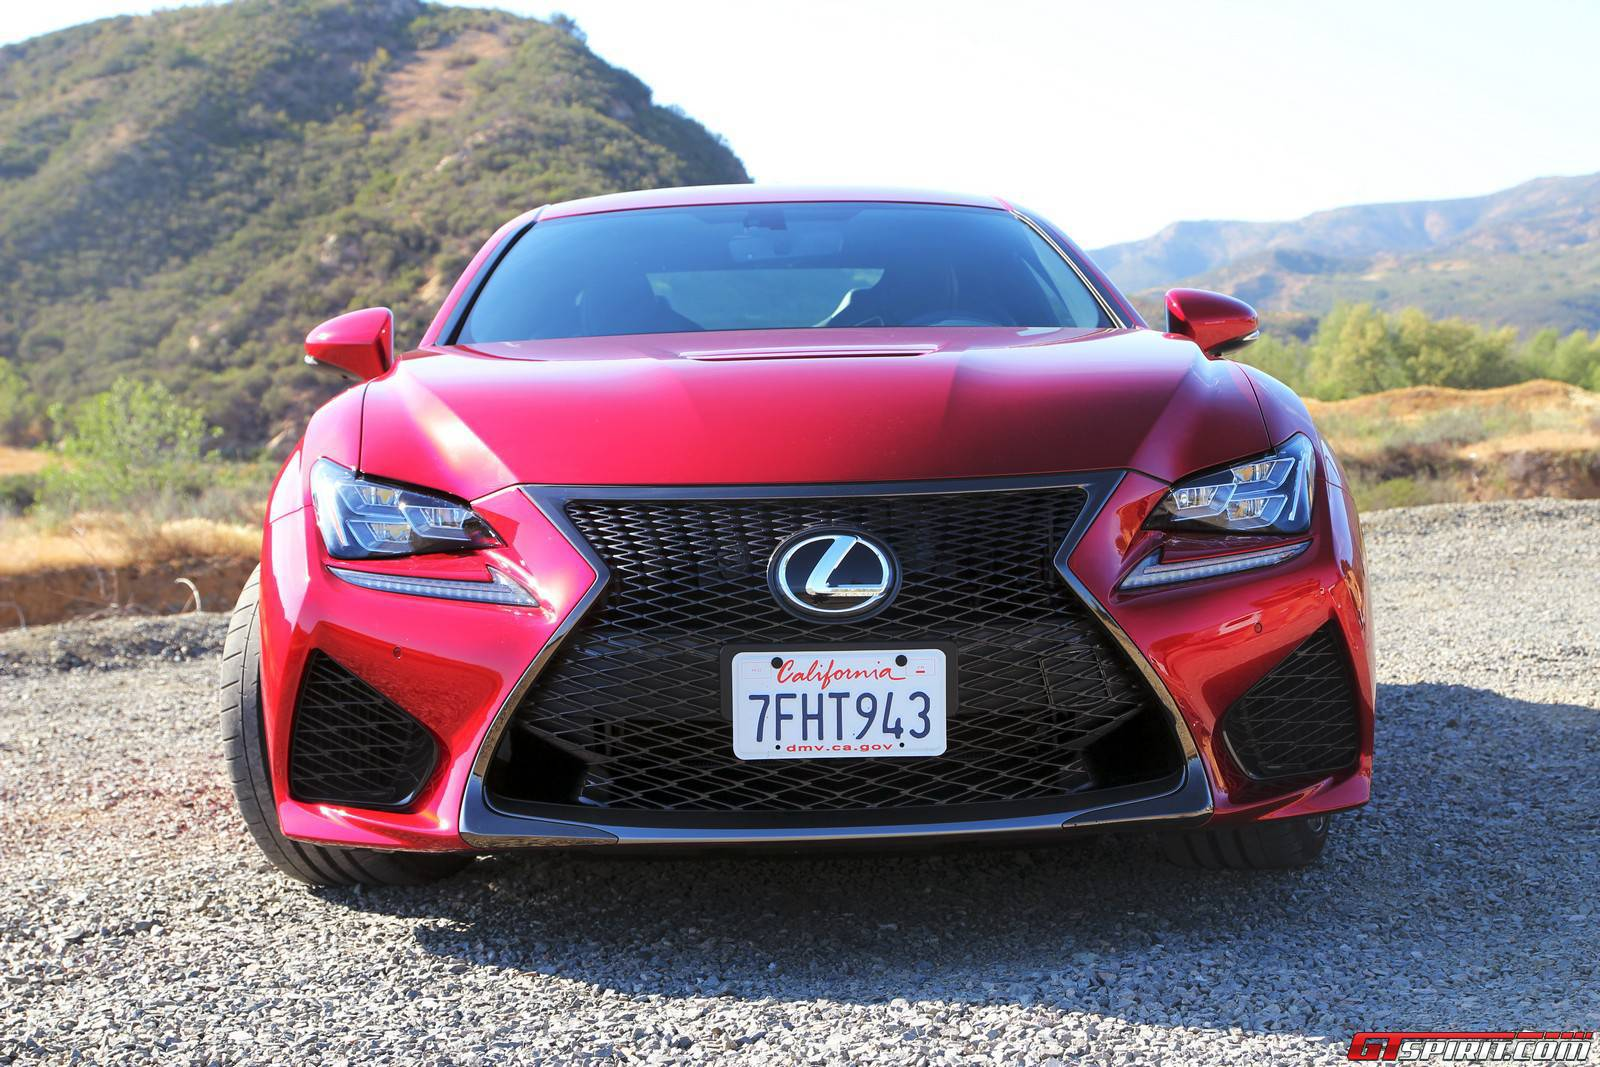 The All-NEW 2016 LEXUS RC F Is Here! Read The EXCLUSIVE Review Of This AGGRESSIVE BEAST! 12